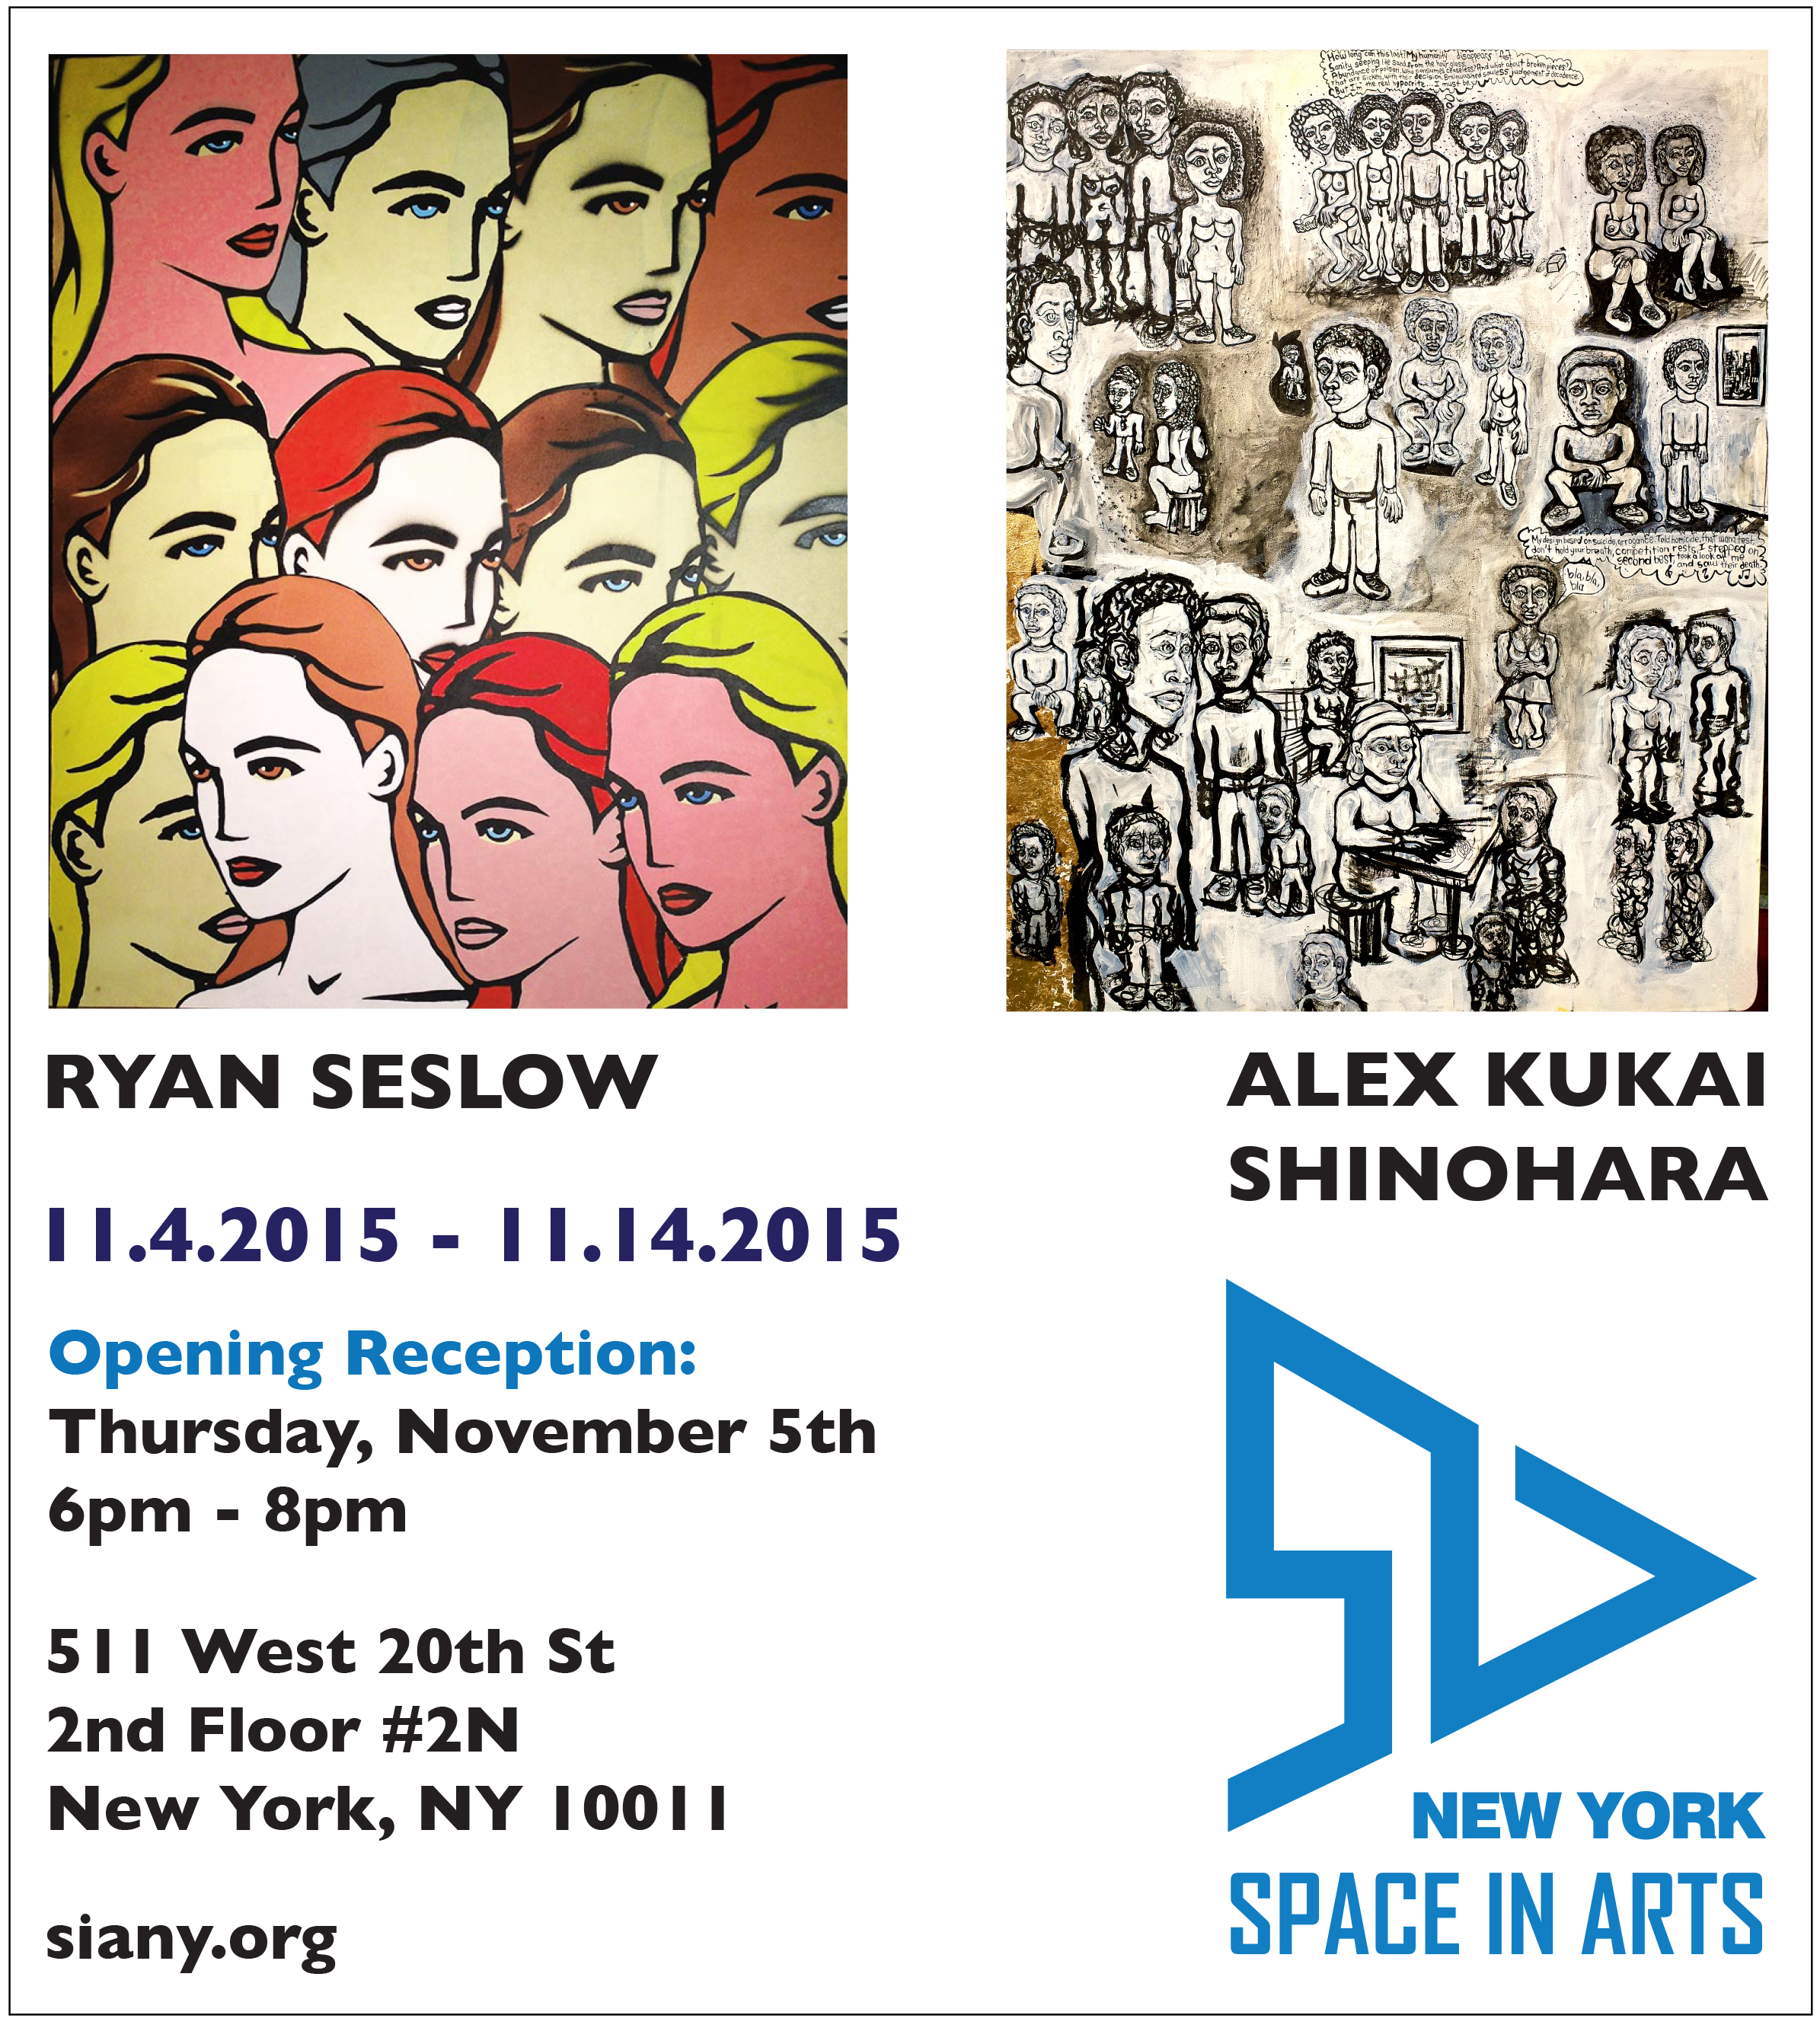 Ryan Seslow & Alex Kukai Shinohara at SIA Gallery, NYC 11/5/15 6-8PM